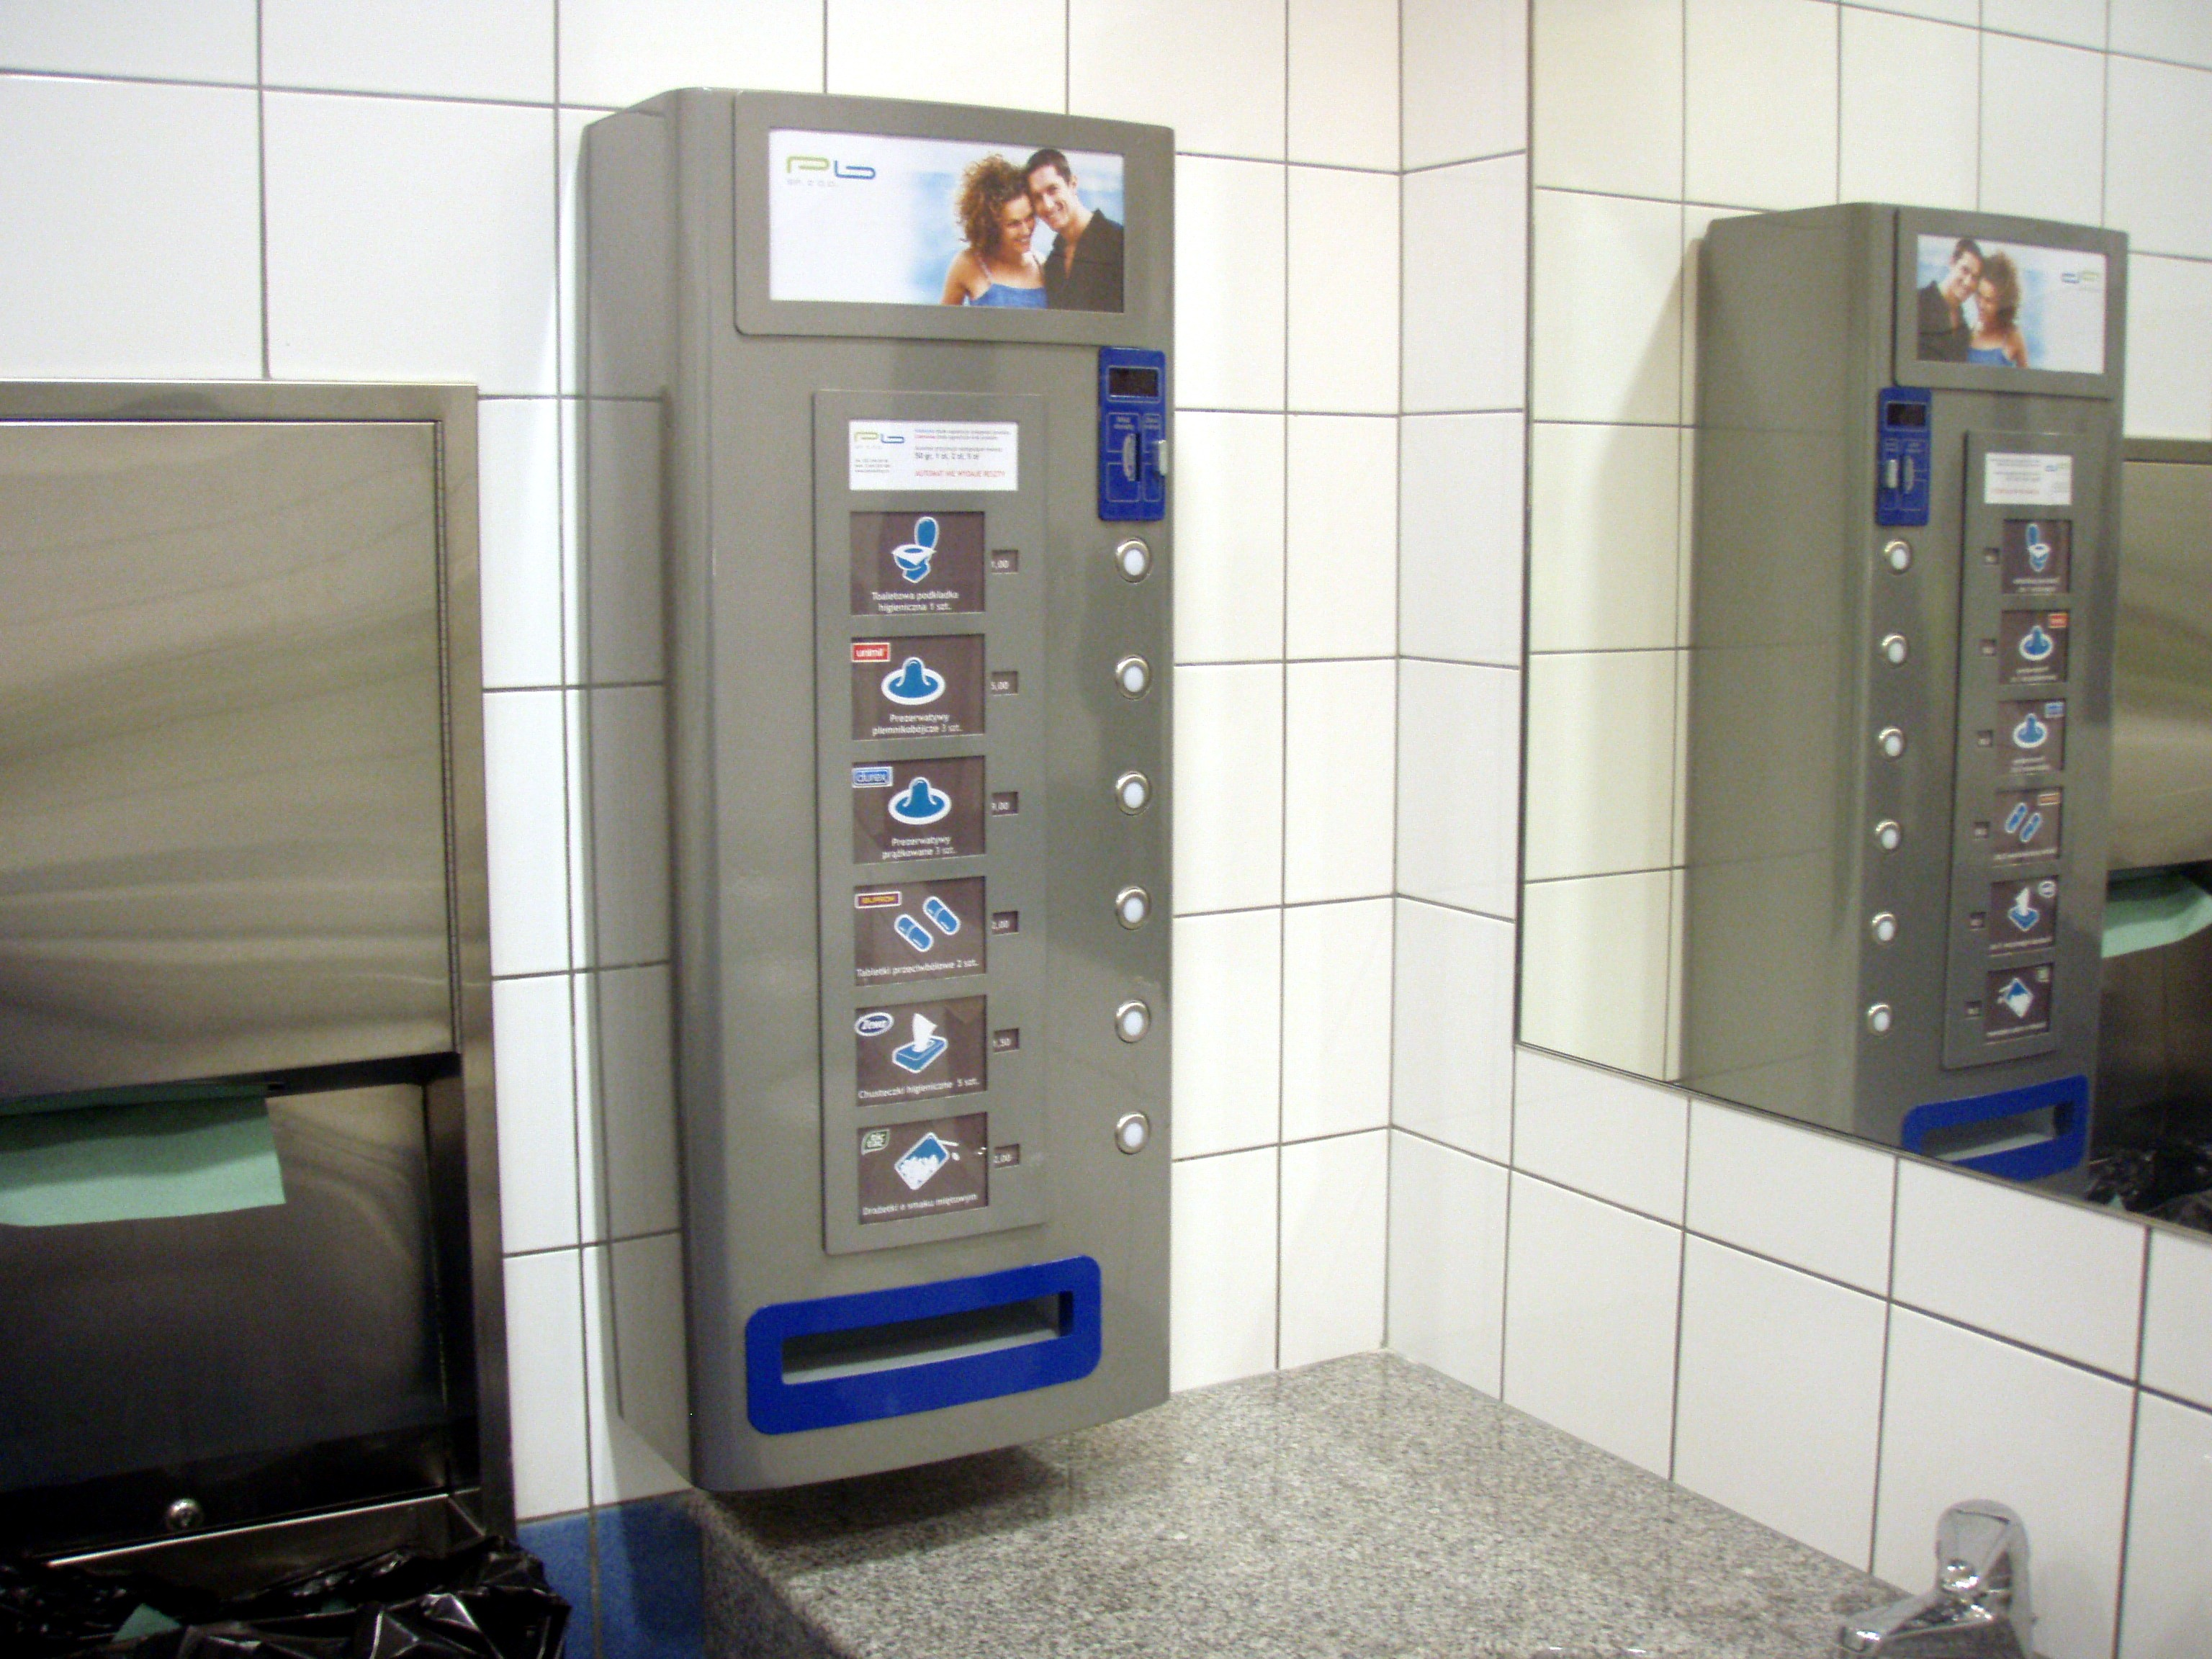 A vending machine in a restroom with hygiene products, in Katowice, Poland